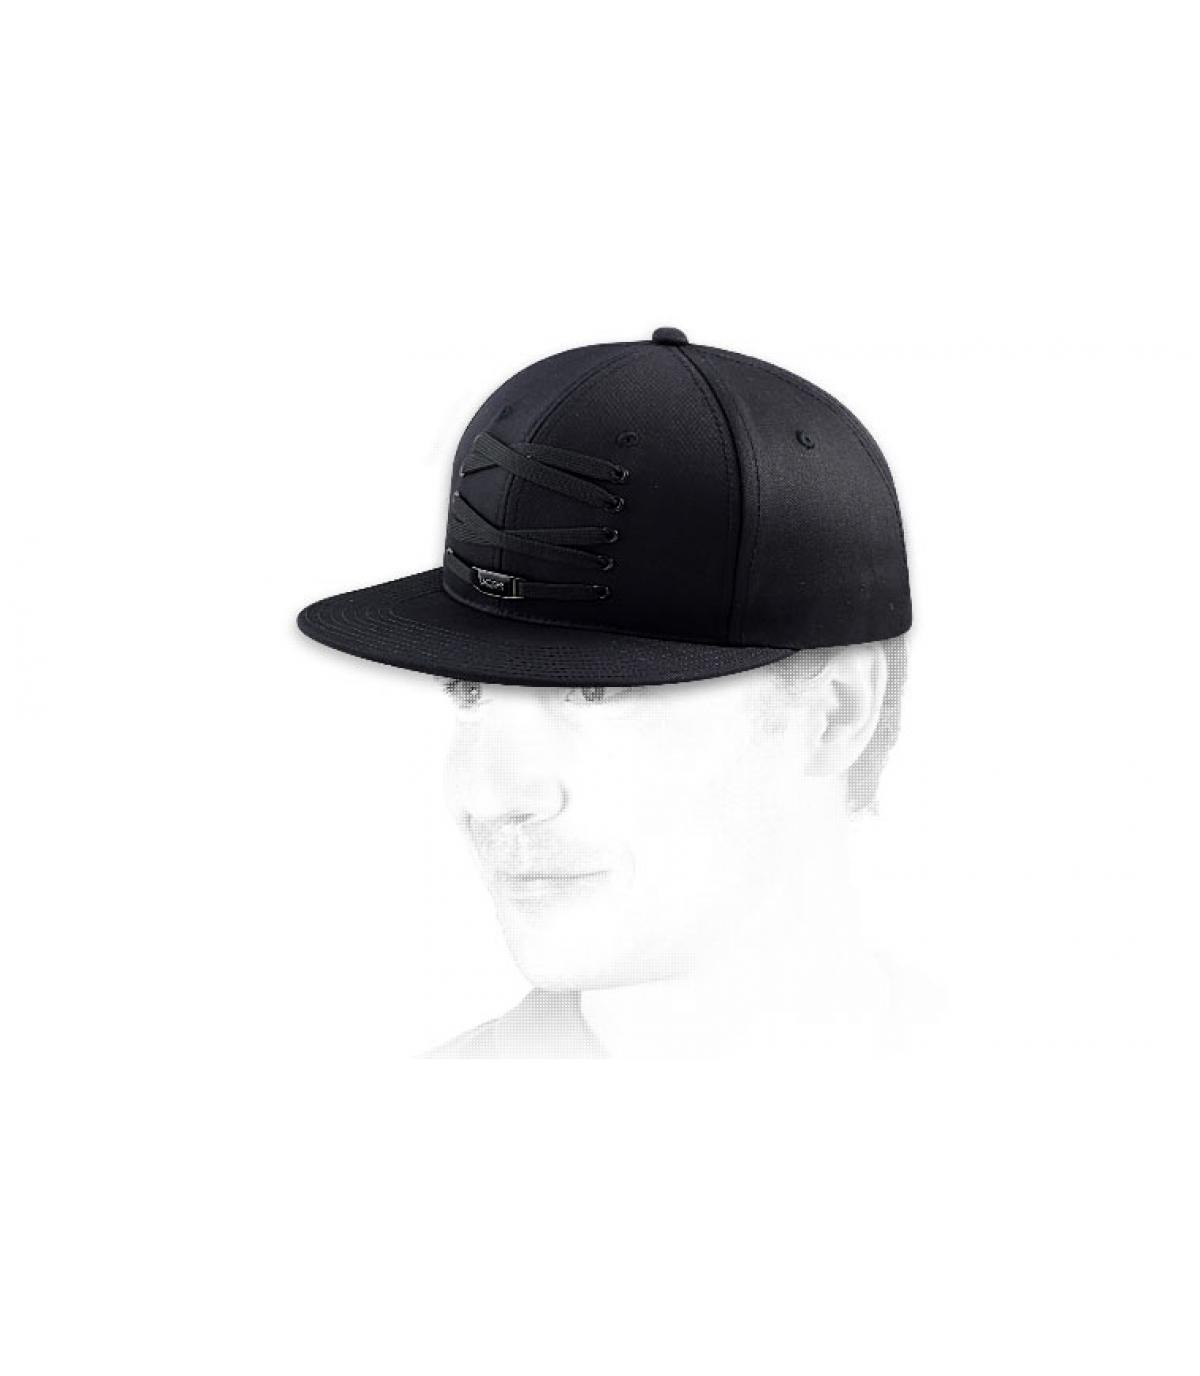 Gorra Lacer lacets negro